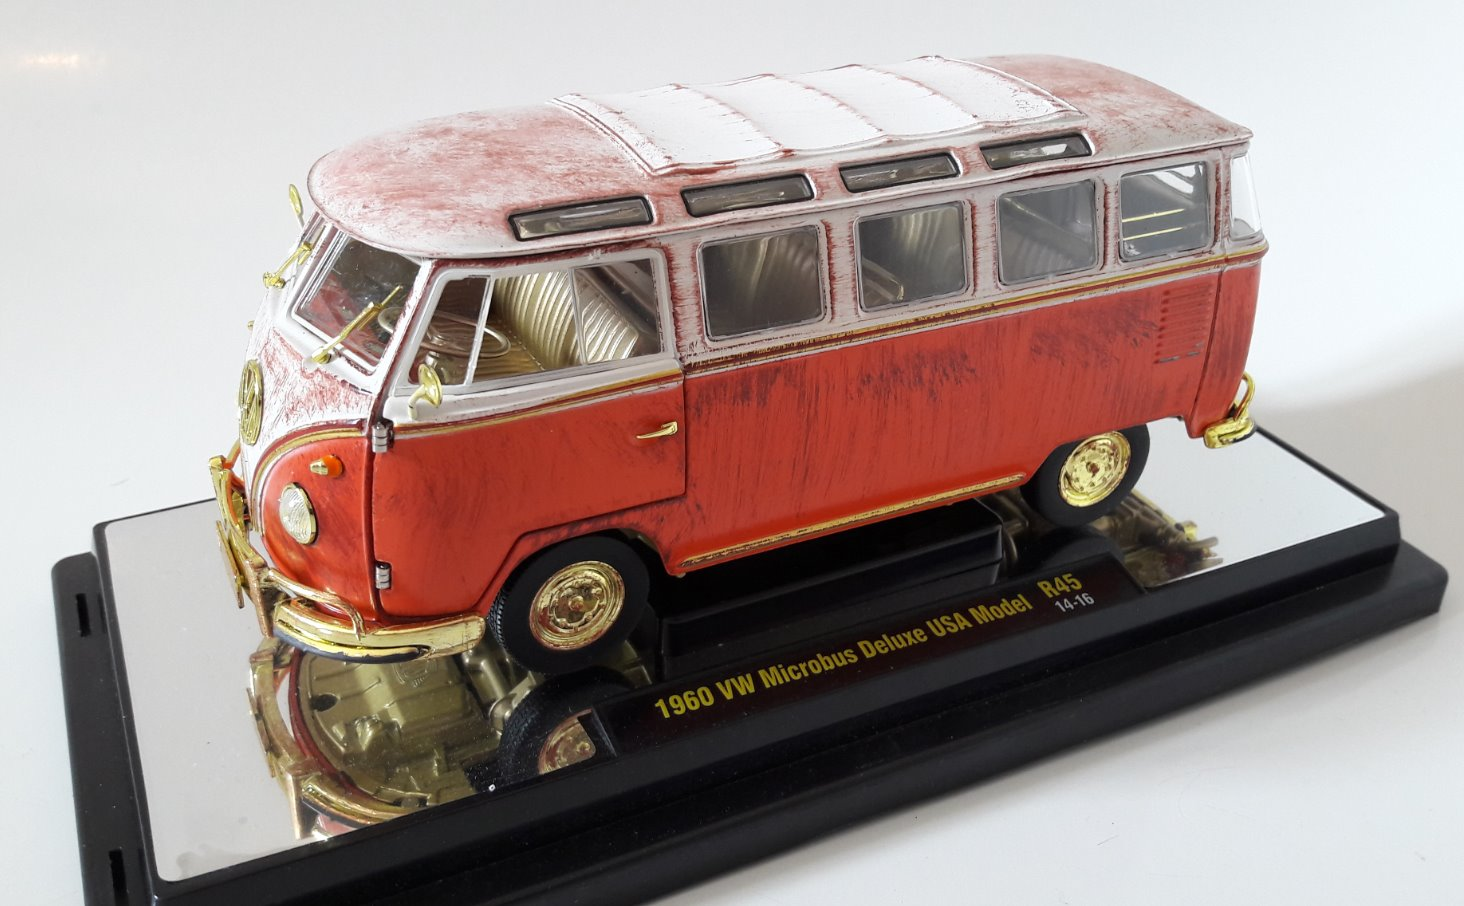 VW Microbus Deluxe USA Model Toy Car, Die Cast, And Hot Wheels - Rottame (1960) front image (front cover)